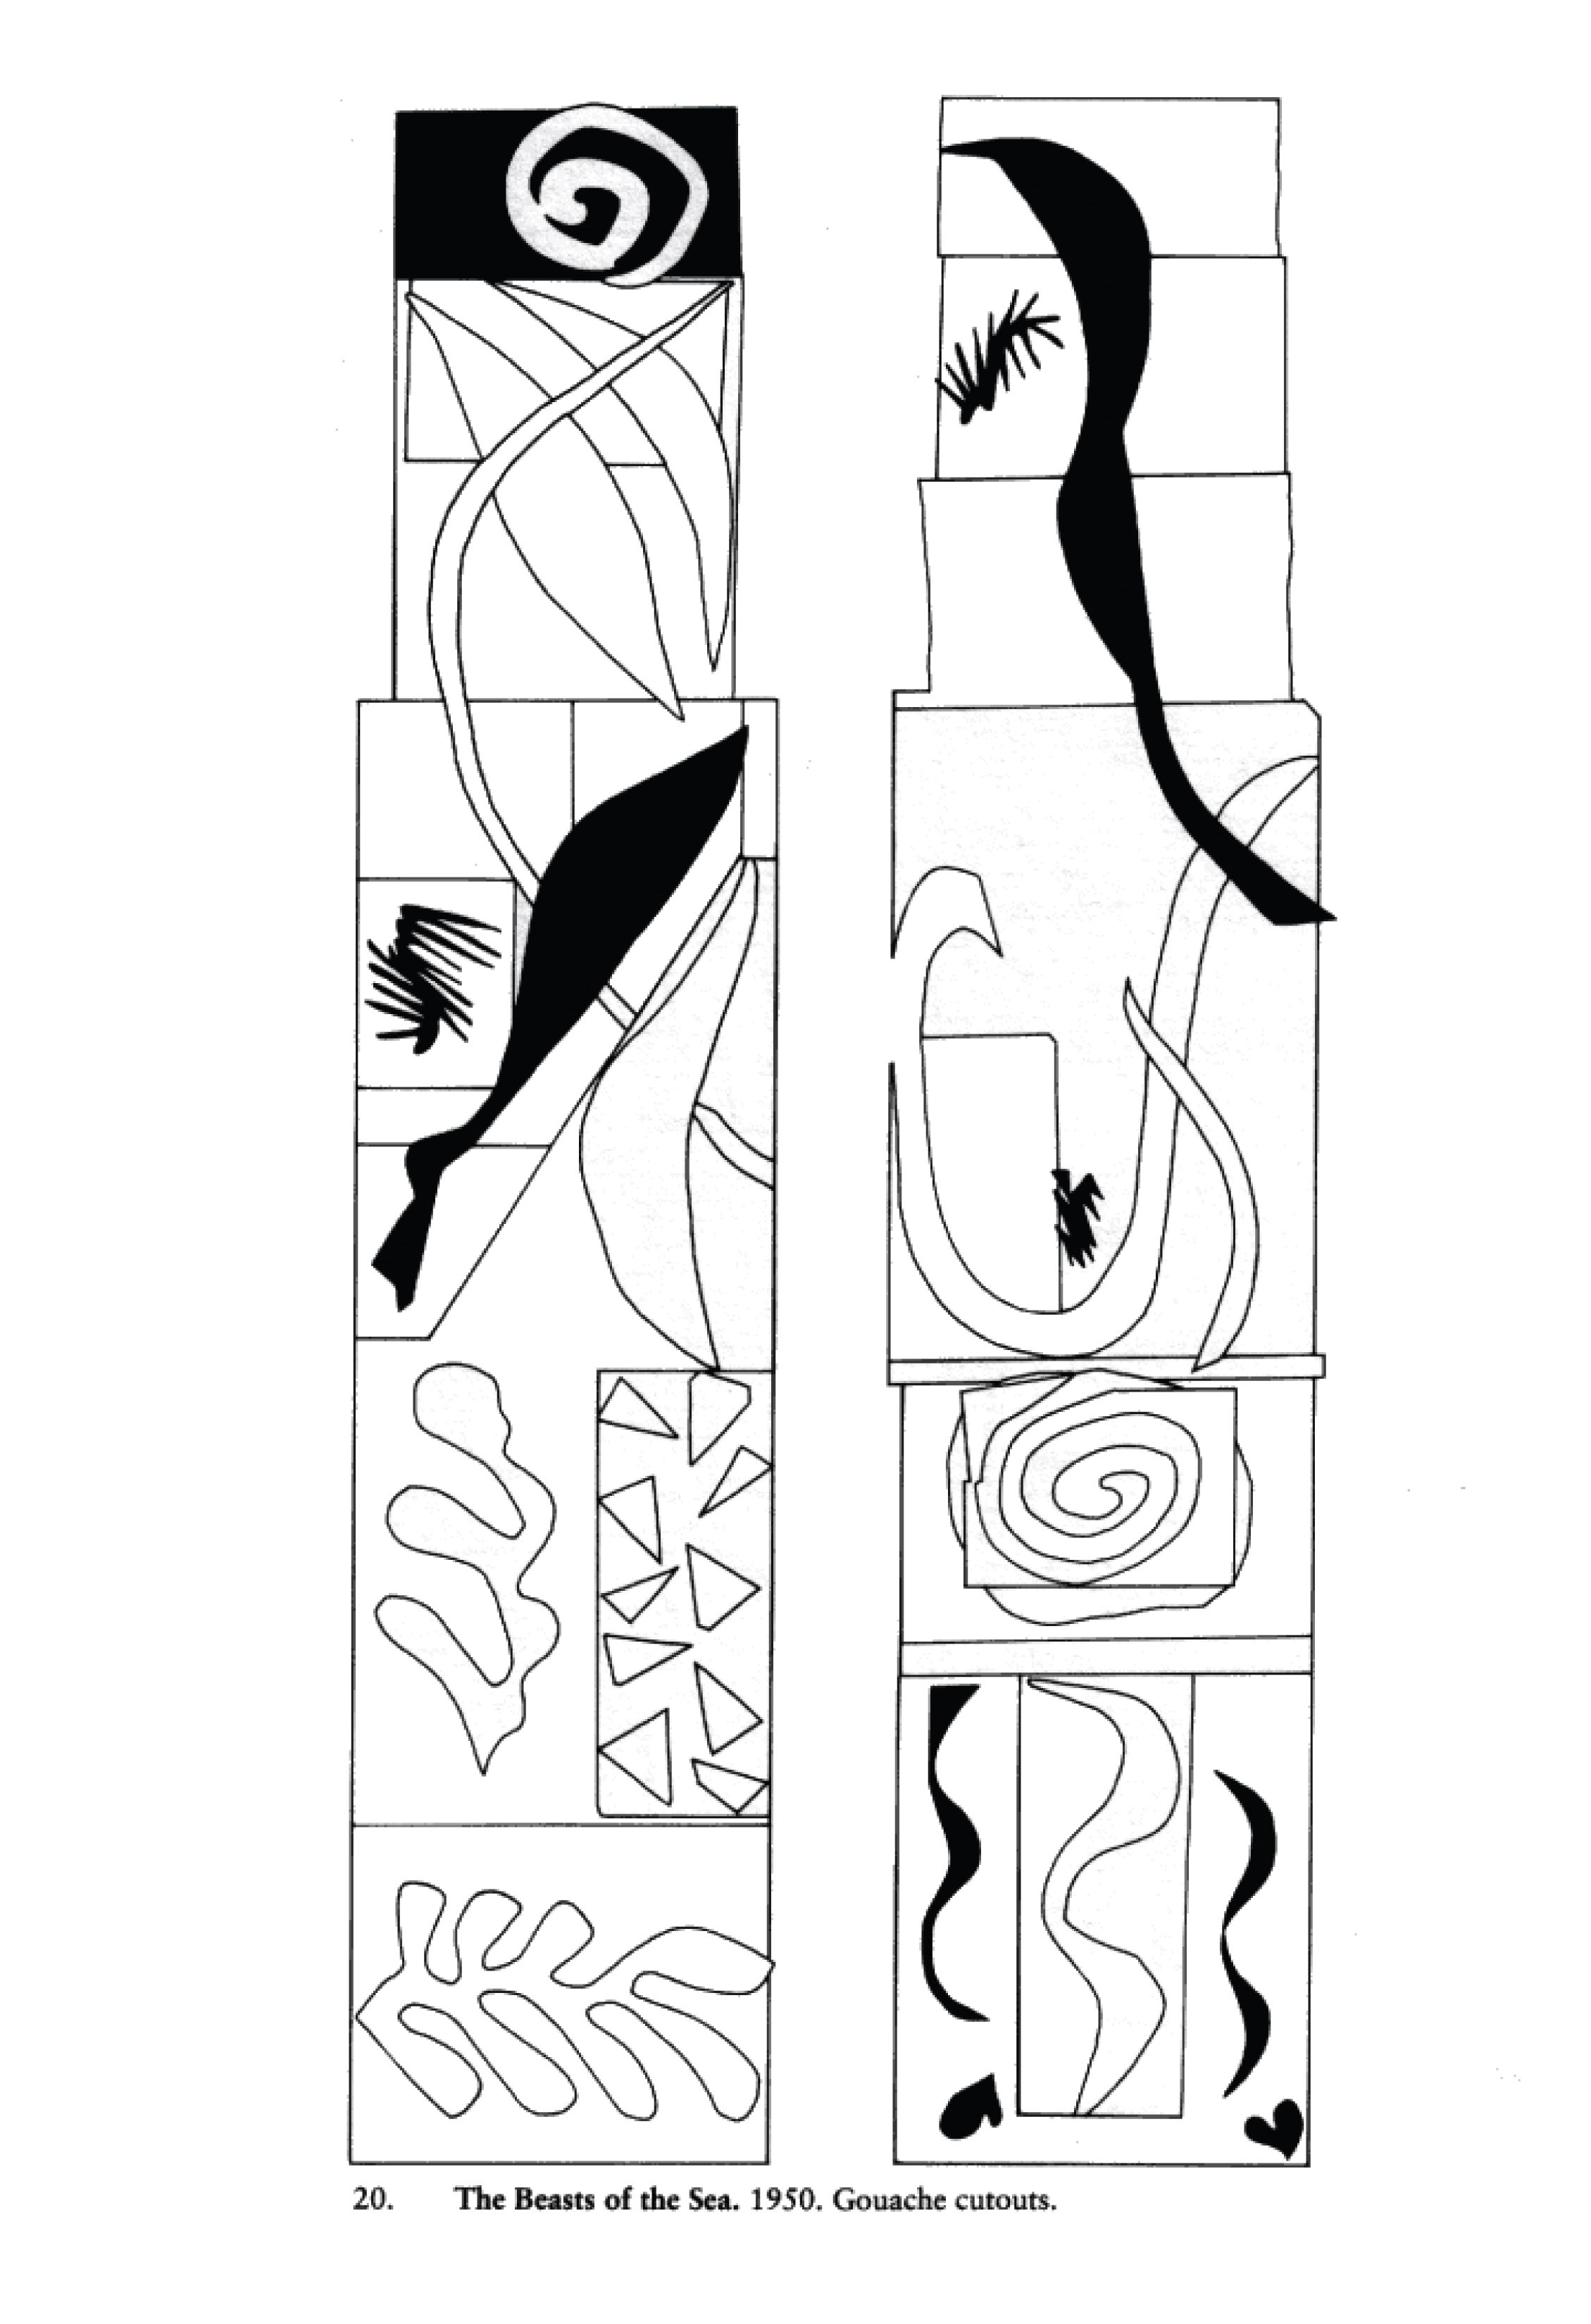 beast of the sea coloring page | Art Matisse/physics color and light ...